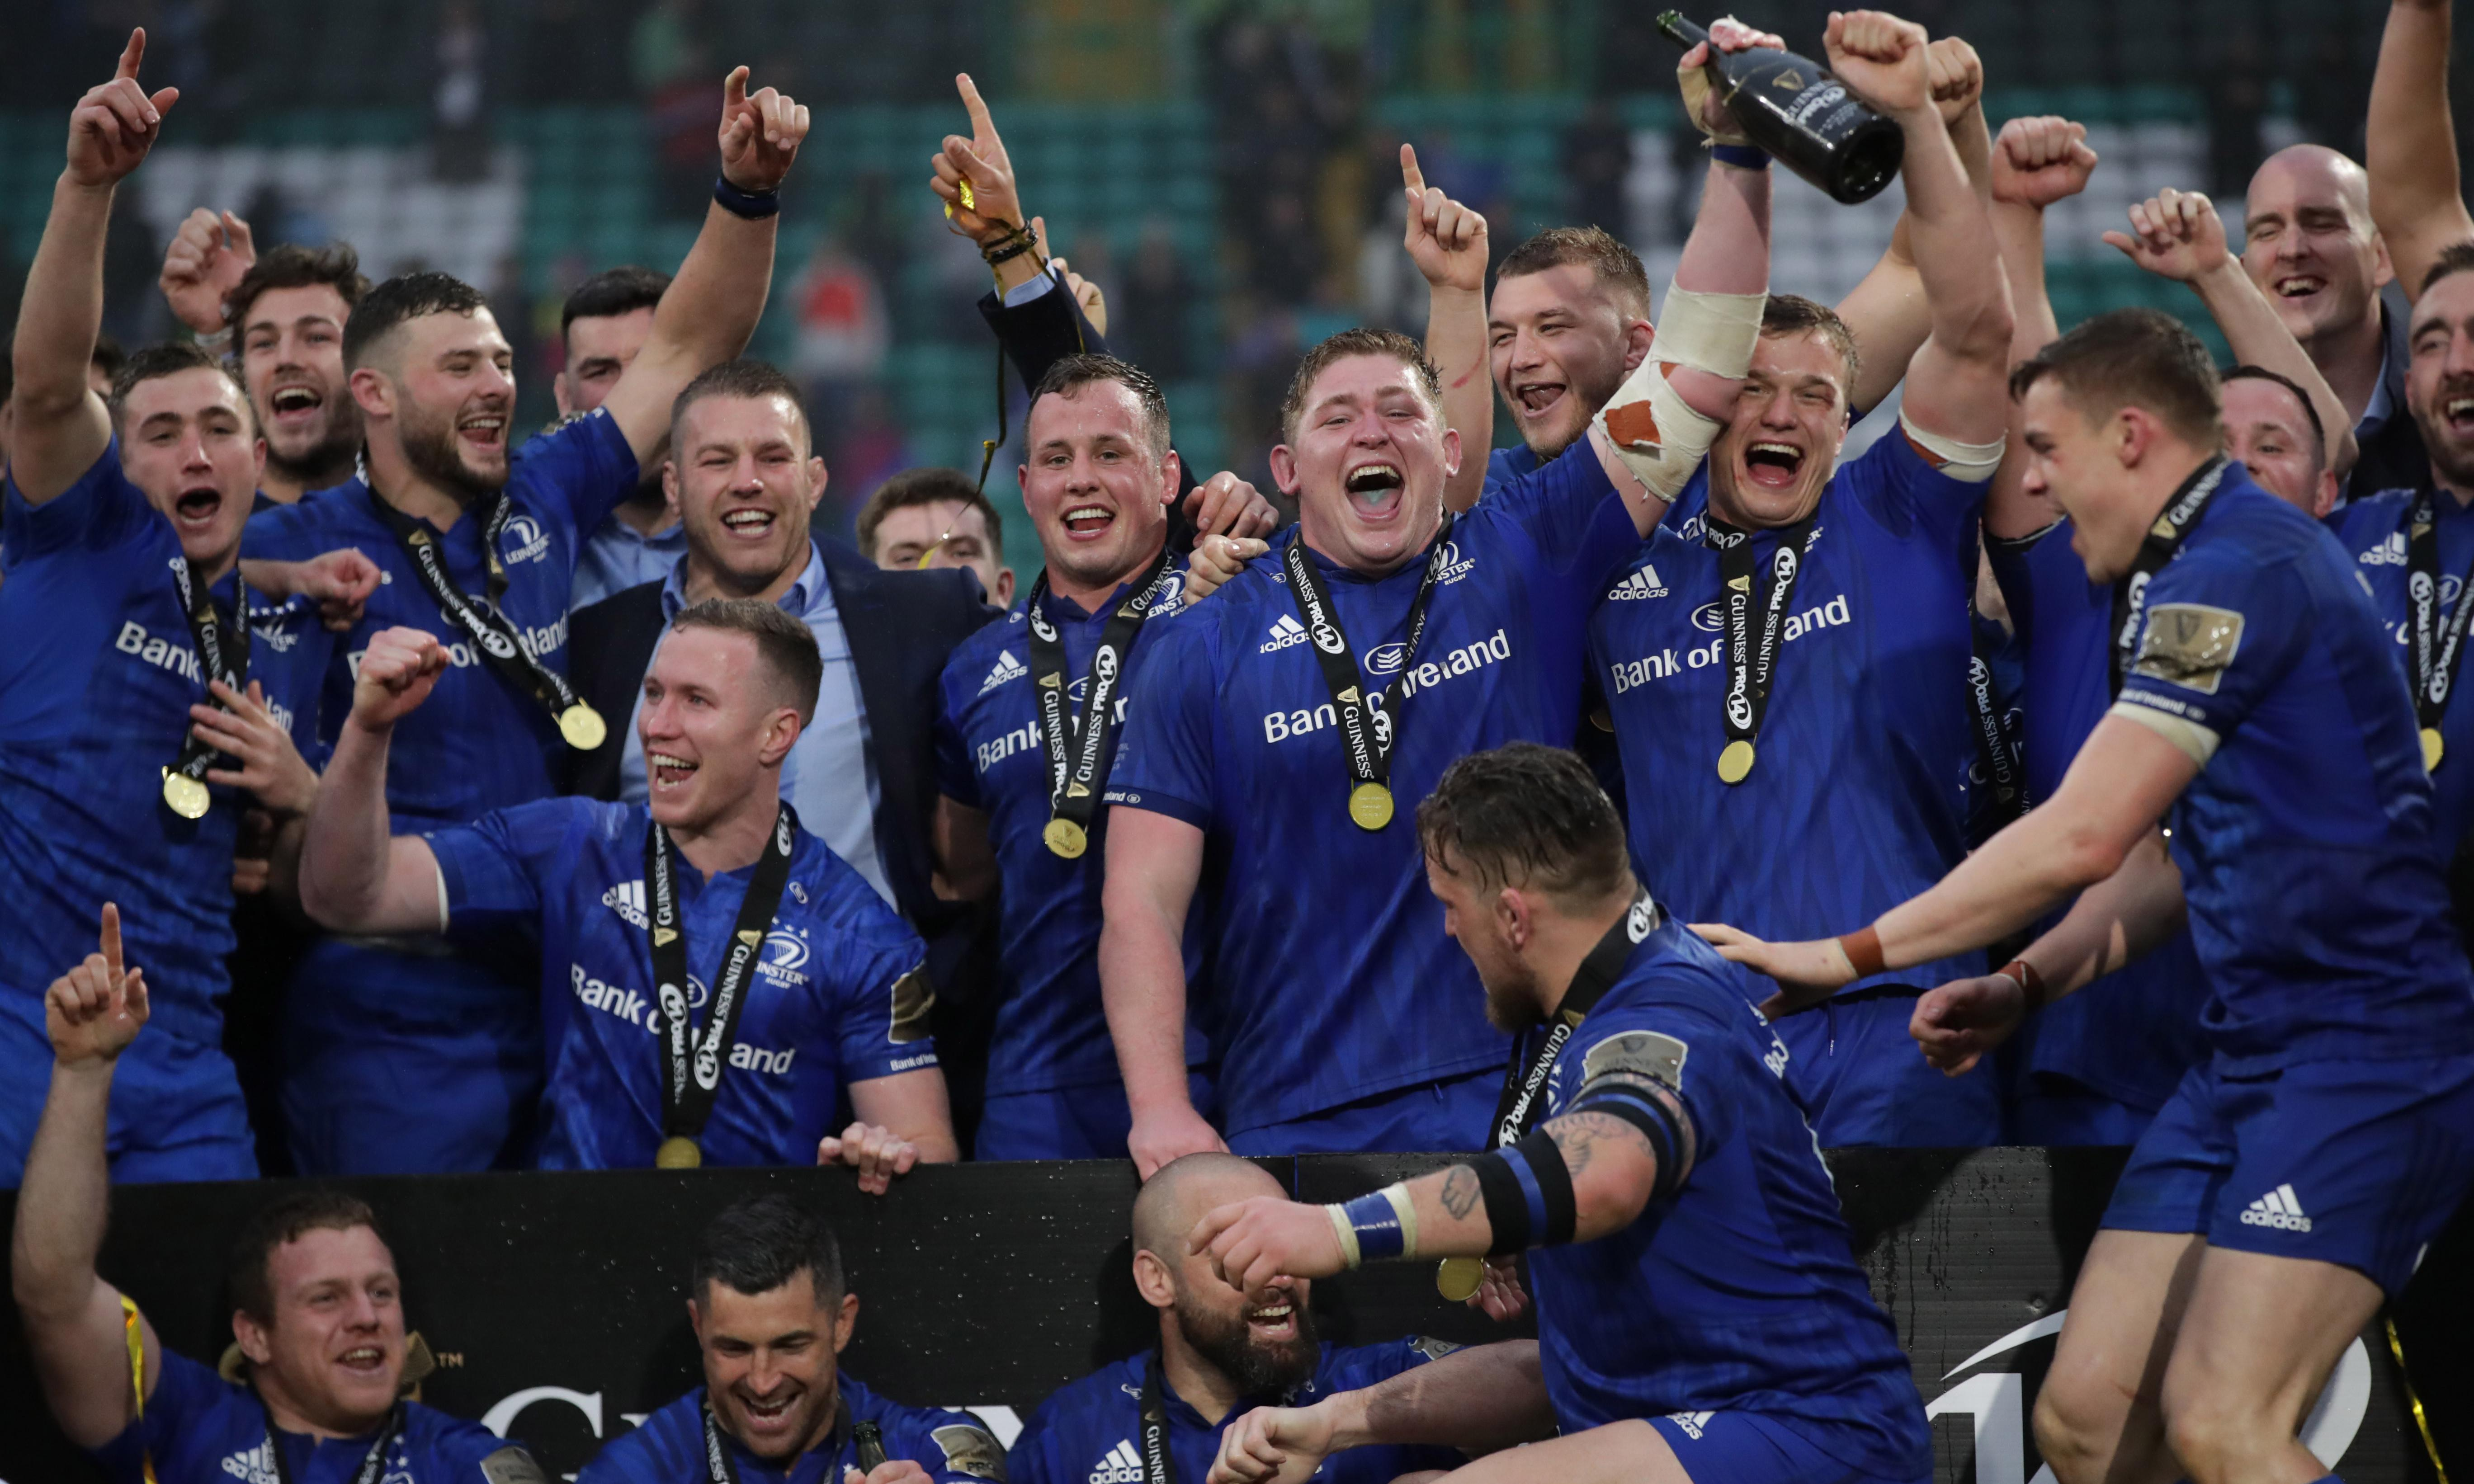 Leinster ruin Stuart Hogg's farewell to claim Pro14 title against Glasgow